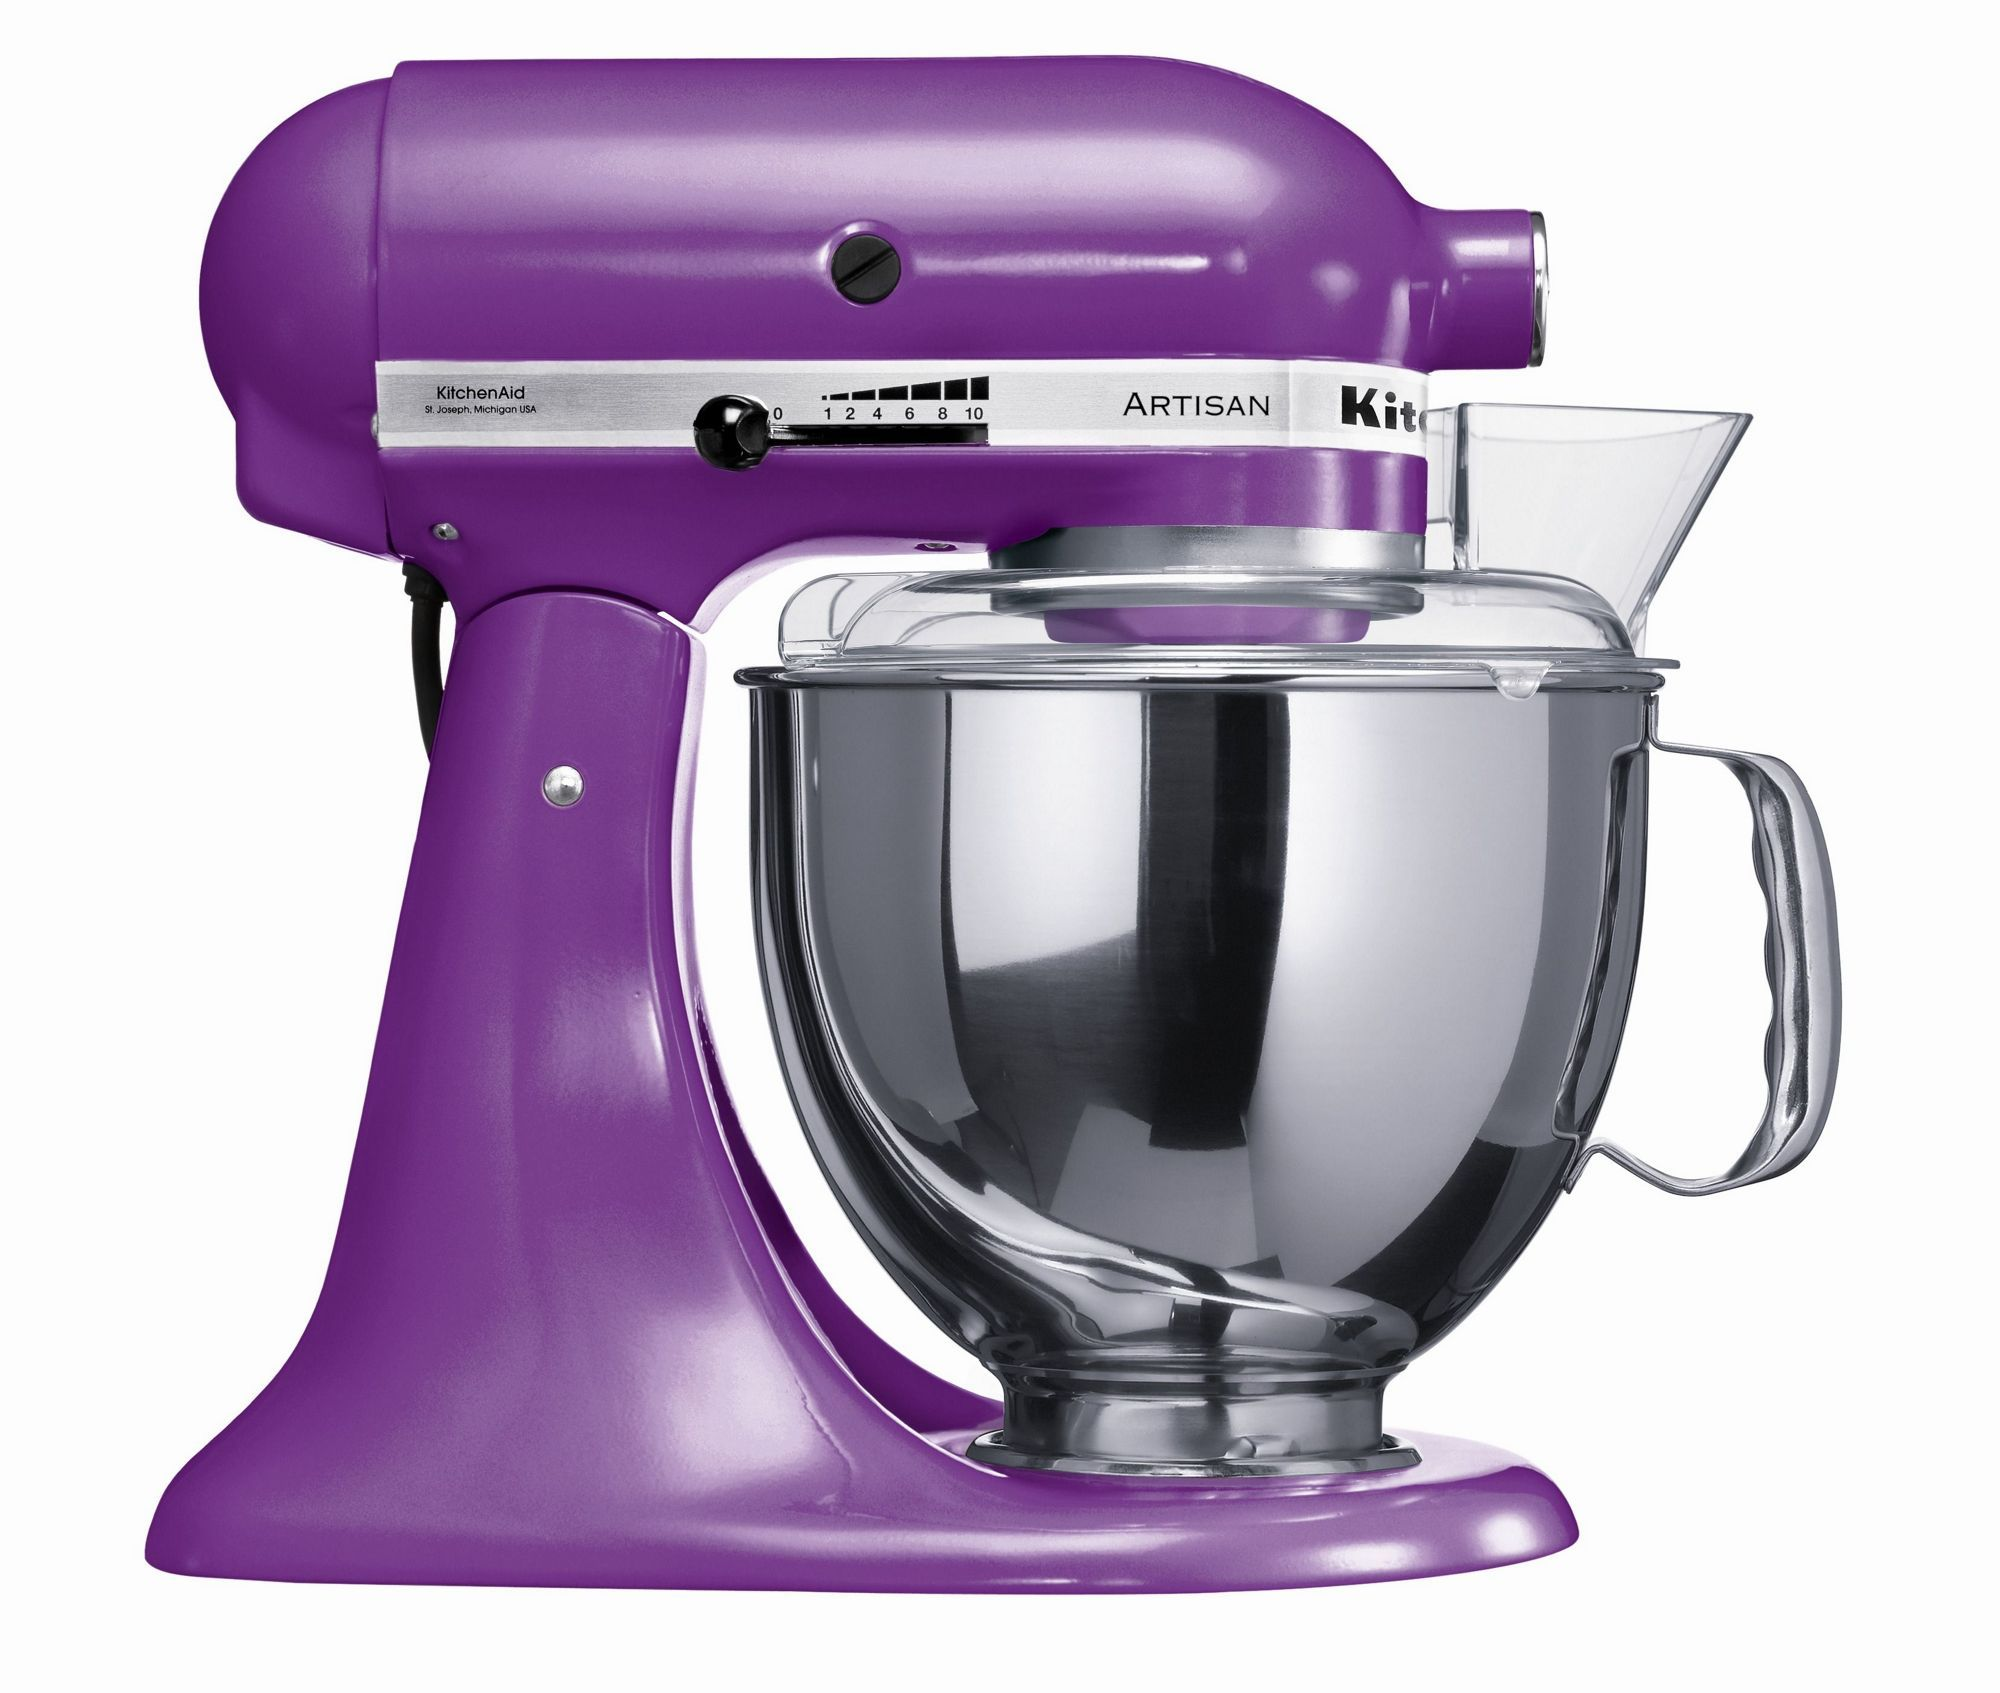 items purple of years nz year in designs this kitchen home and ken color the appliances by decor accessories